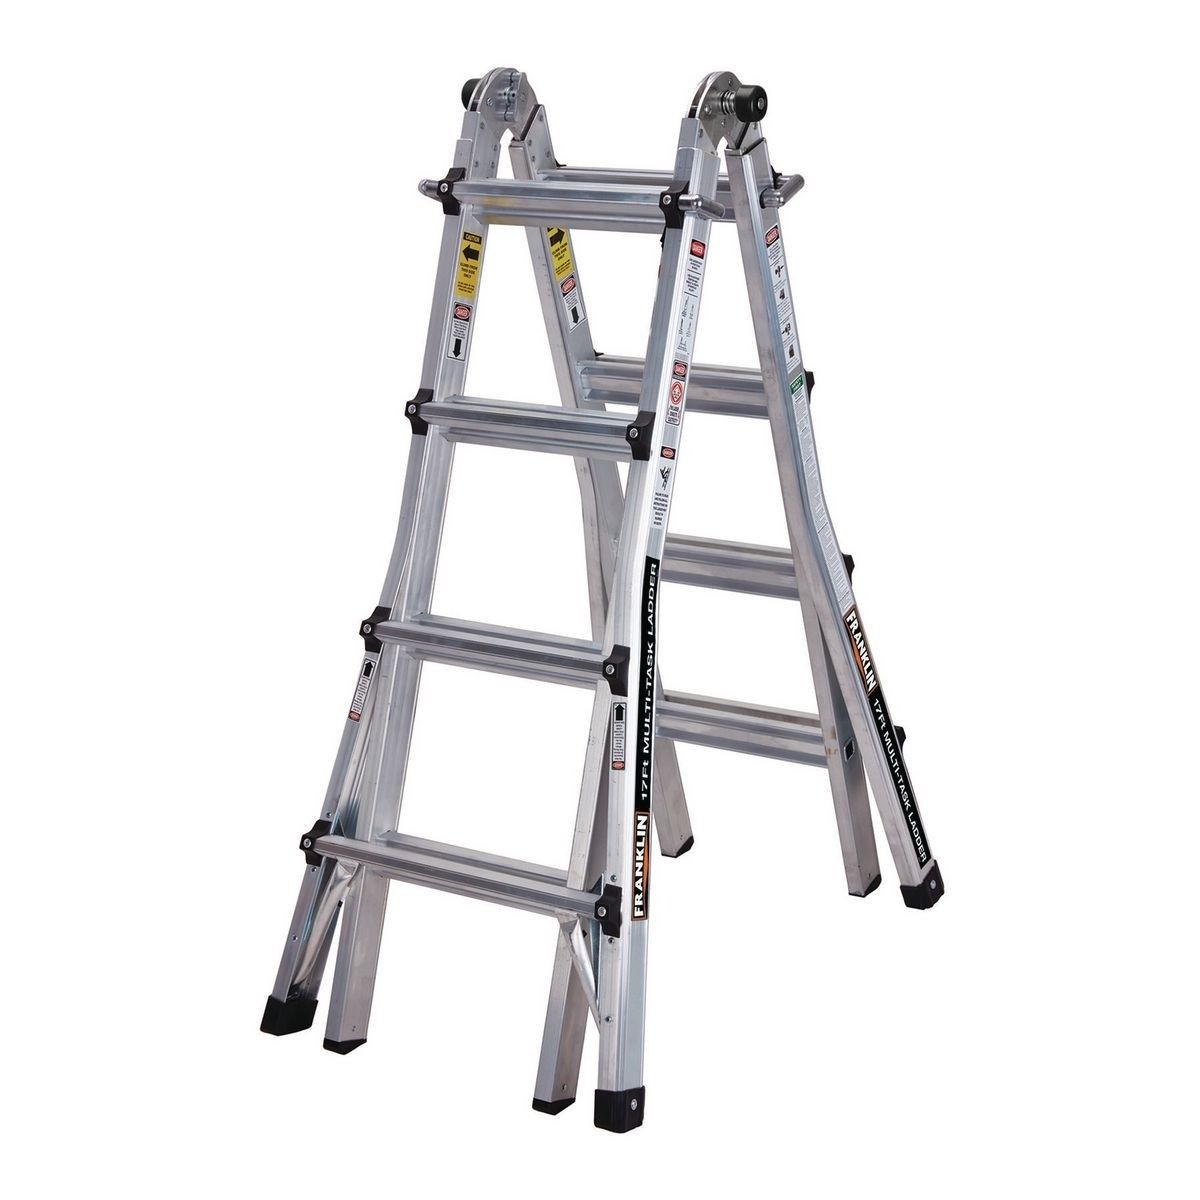 Equal Foldable Multipurpose Aluminium Super Ladder With 2 Scaffolding Platform Shelf 12 Feet In 2020 Ladder Aluminium Ladder Multi Purpose Ladder